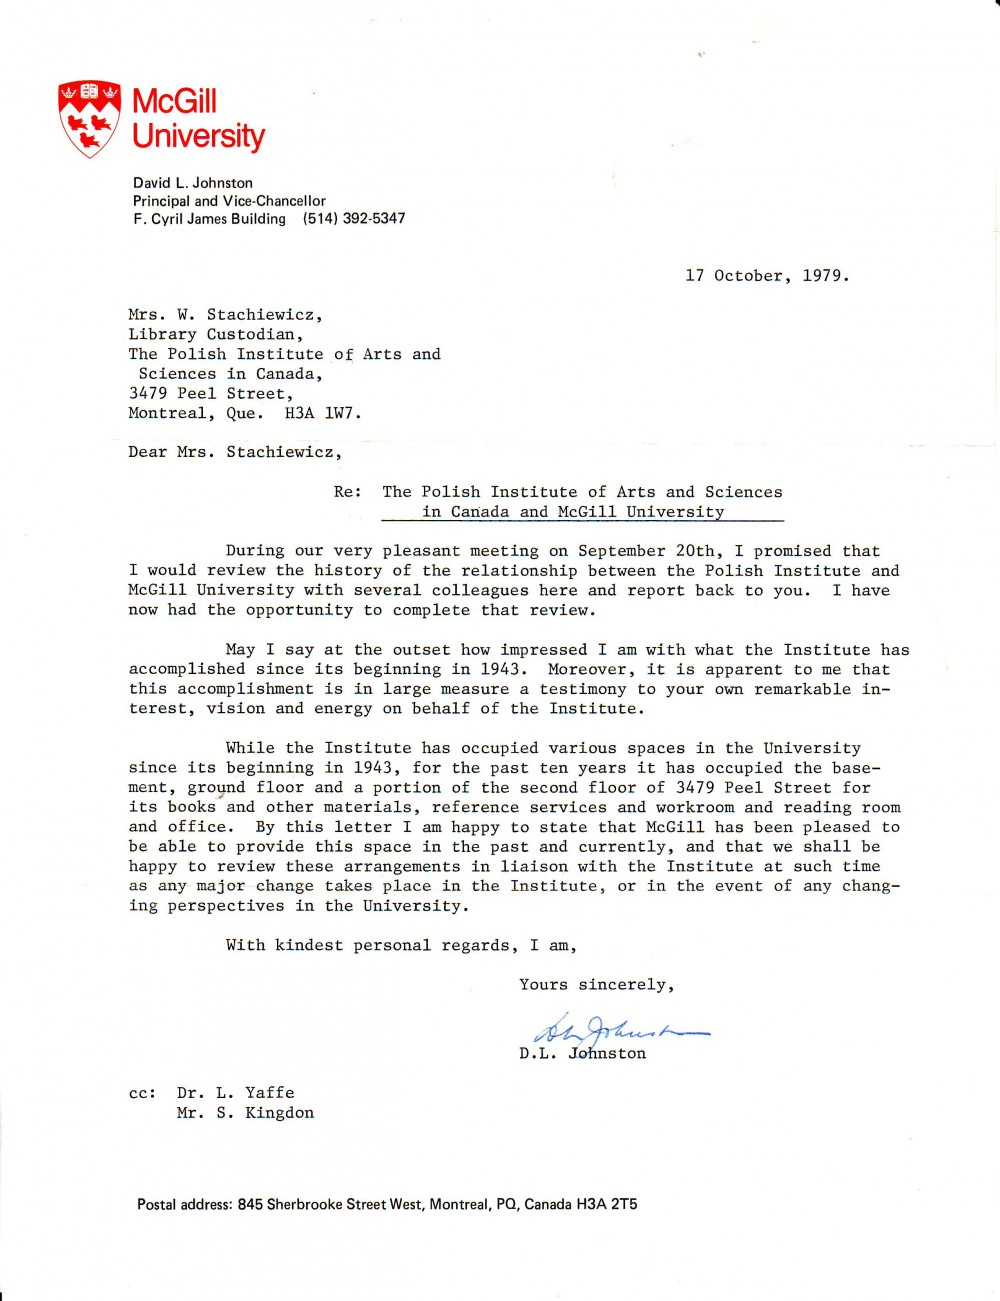 Letter sent to PIASA in 1979 by Principal Johnston / (Courtesy of PIASA archives)